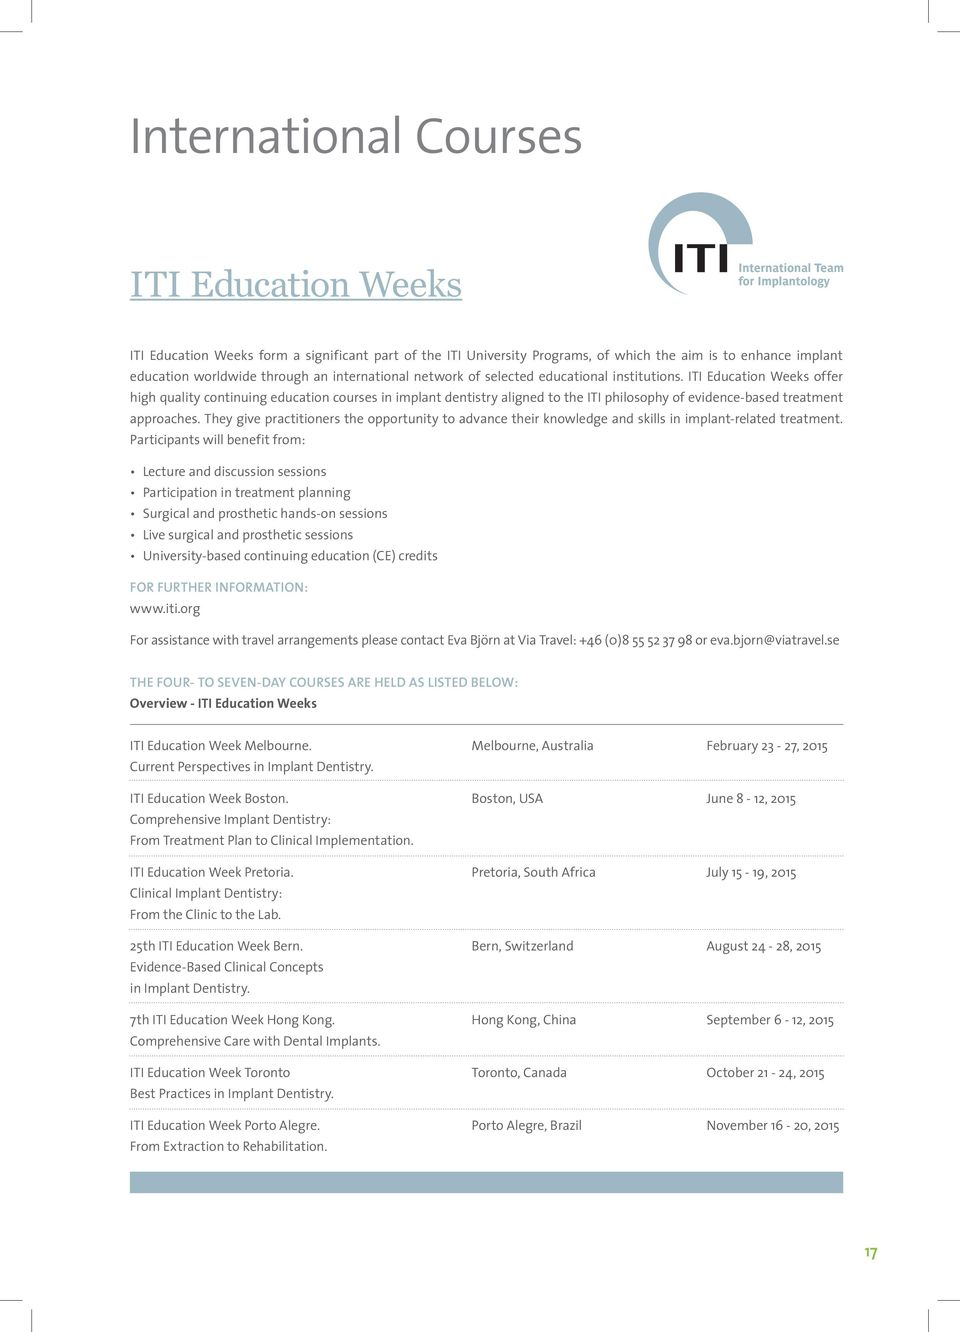 ITI Education Weeks offer high quality continuing education courses in implant dentistry aligned to the ITI philosophy of evidence-based treatment approaches.